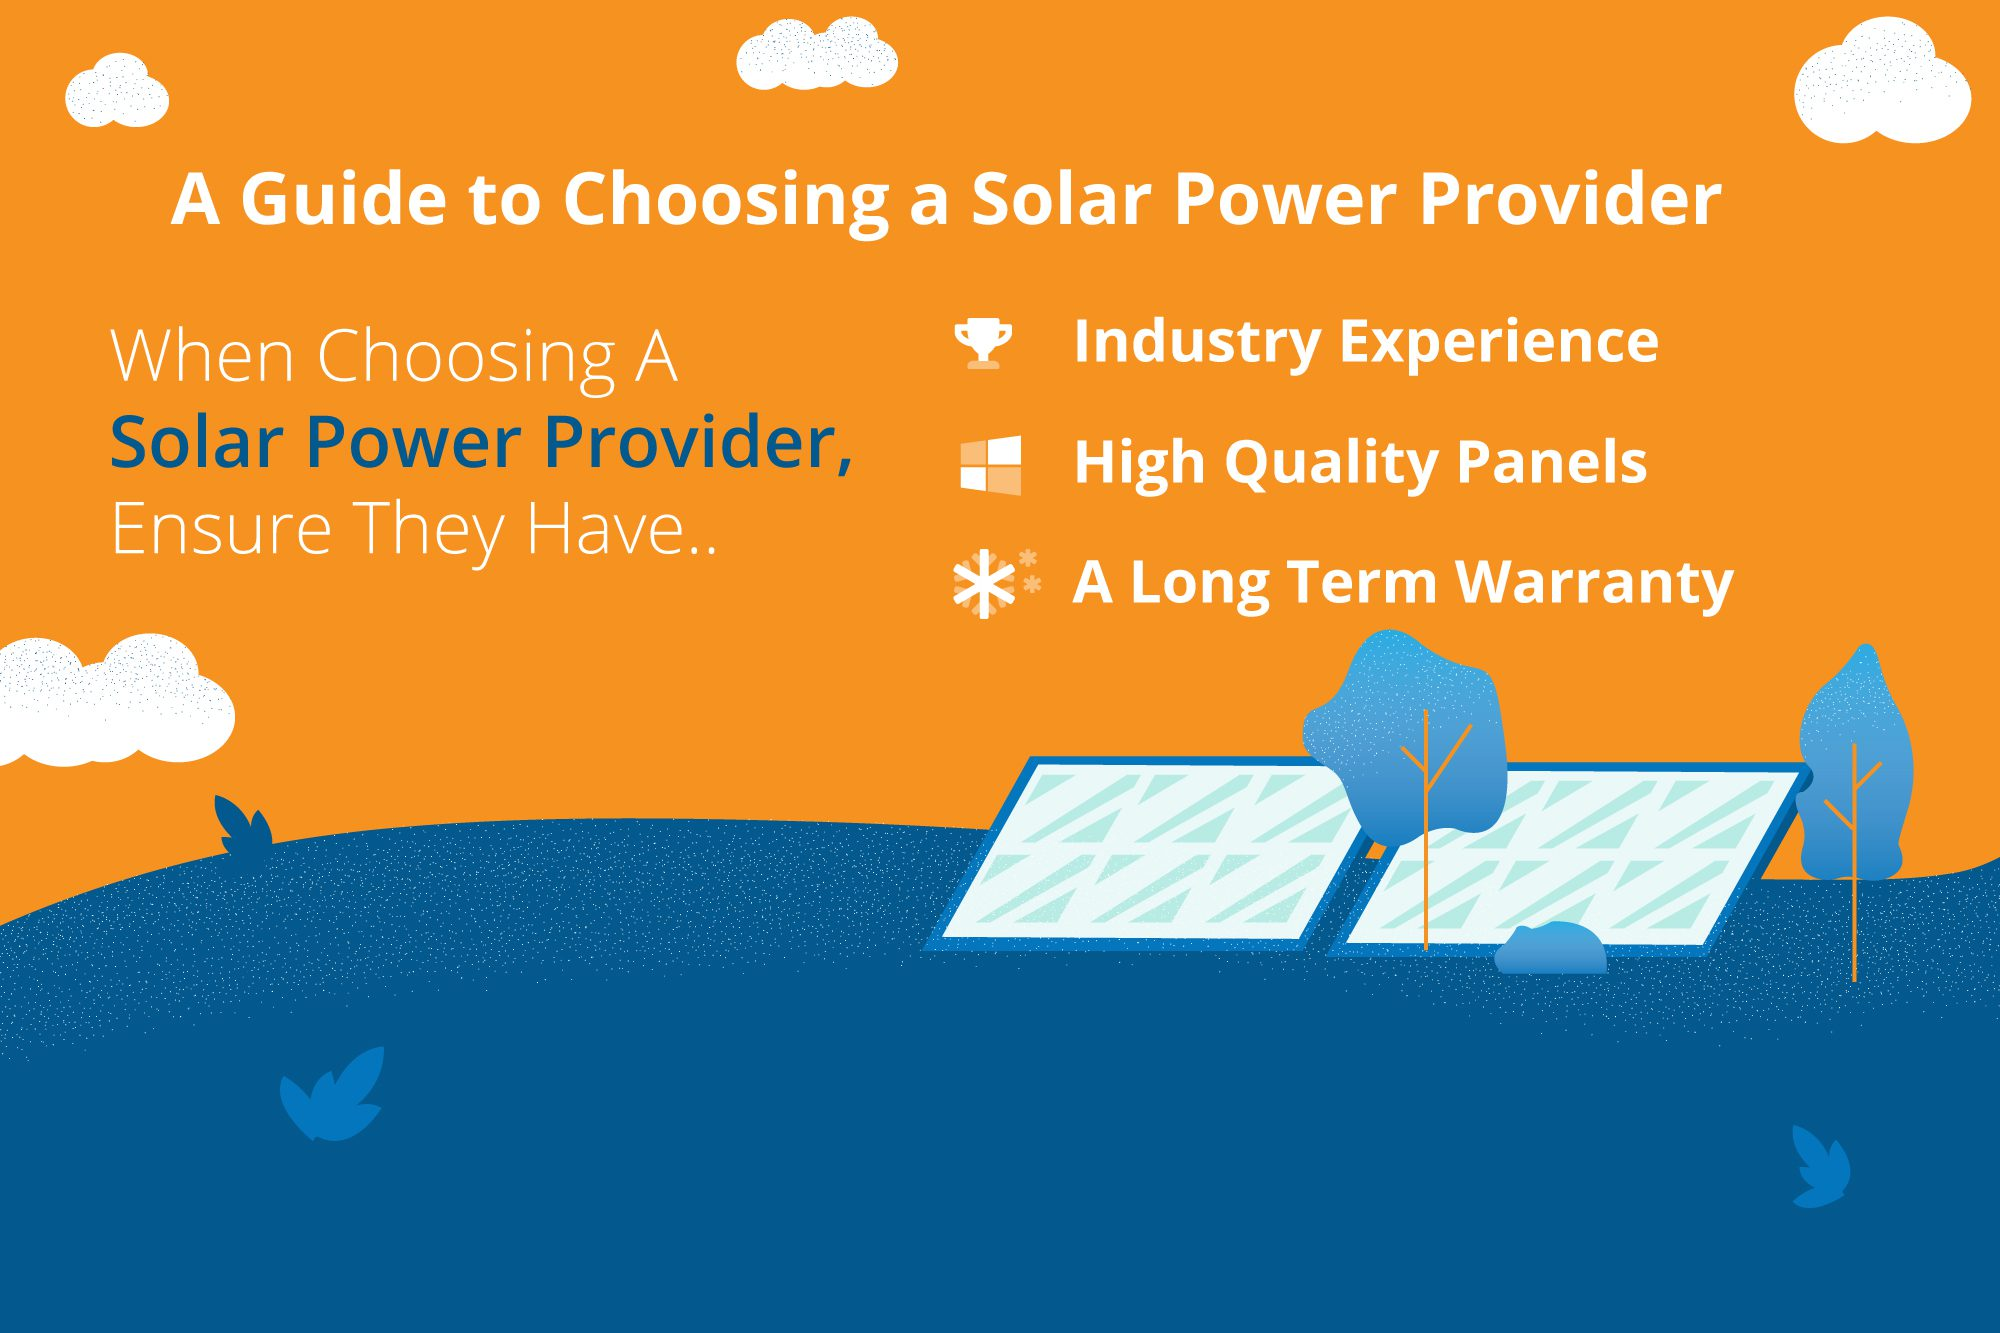 How to choose a solar power provider